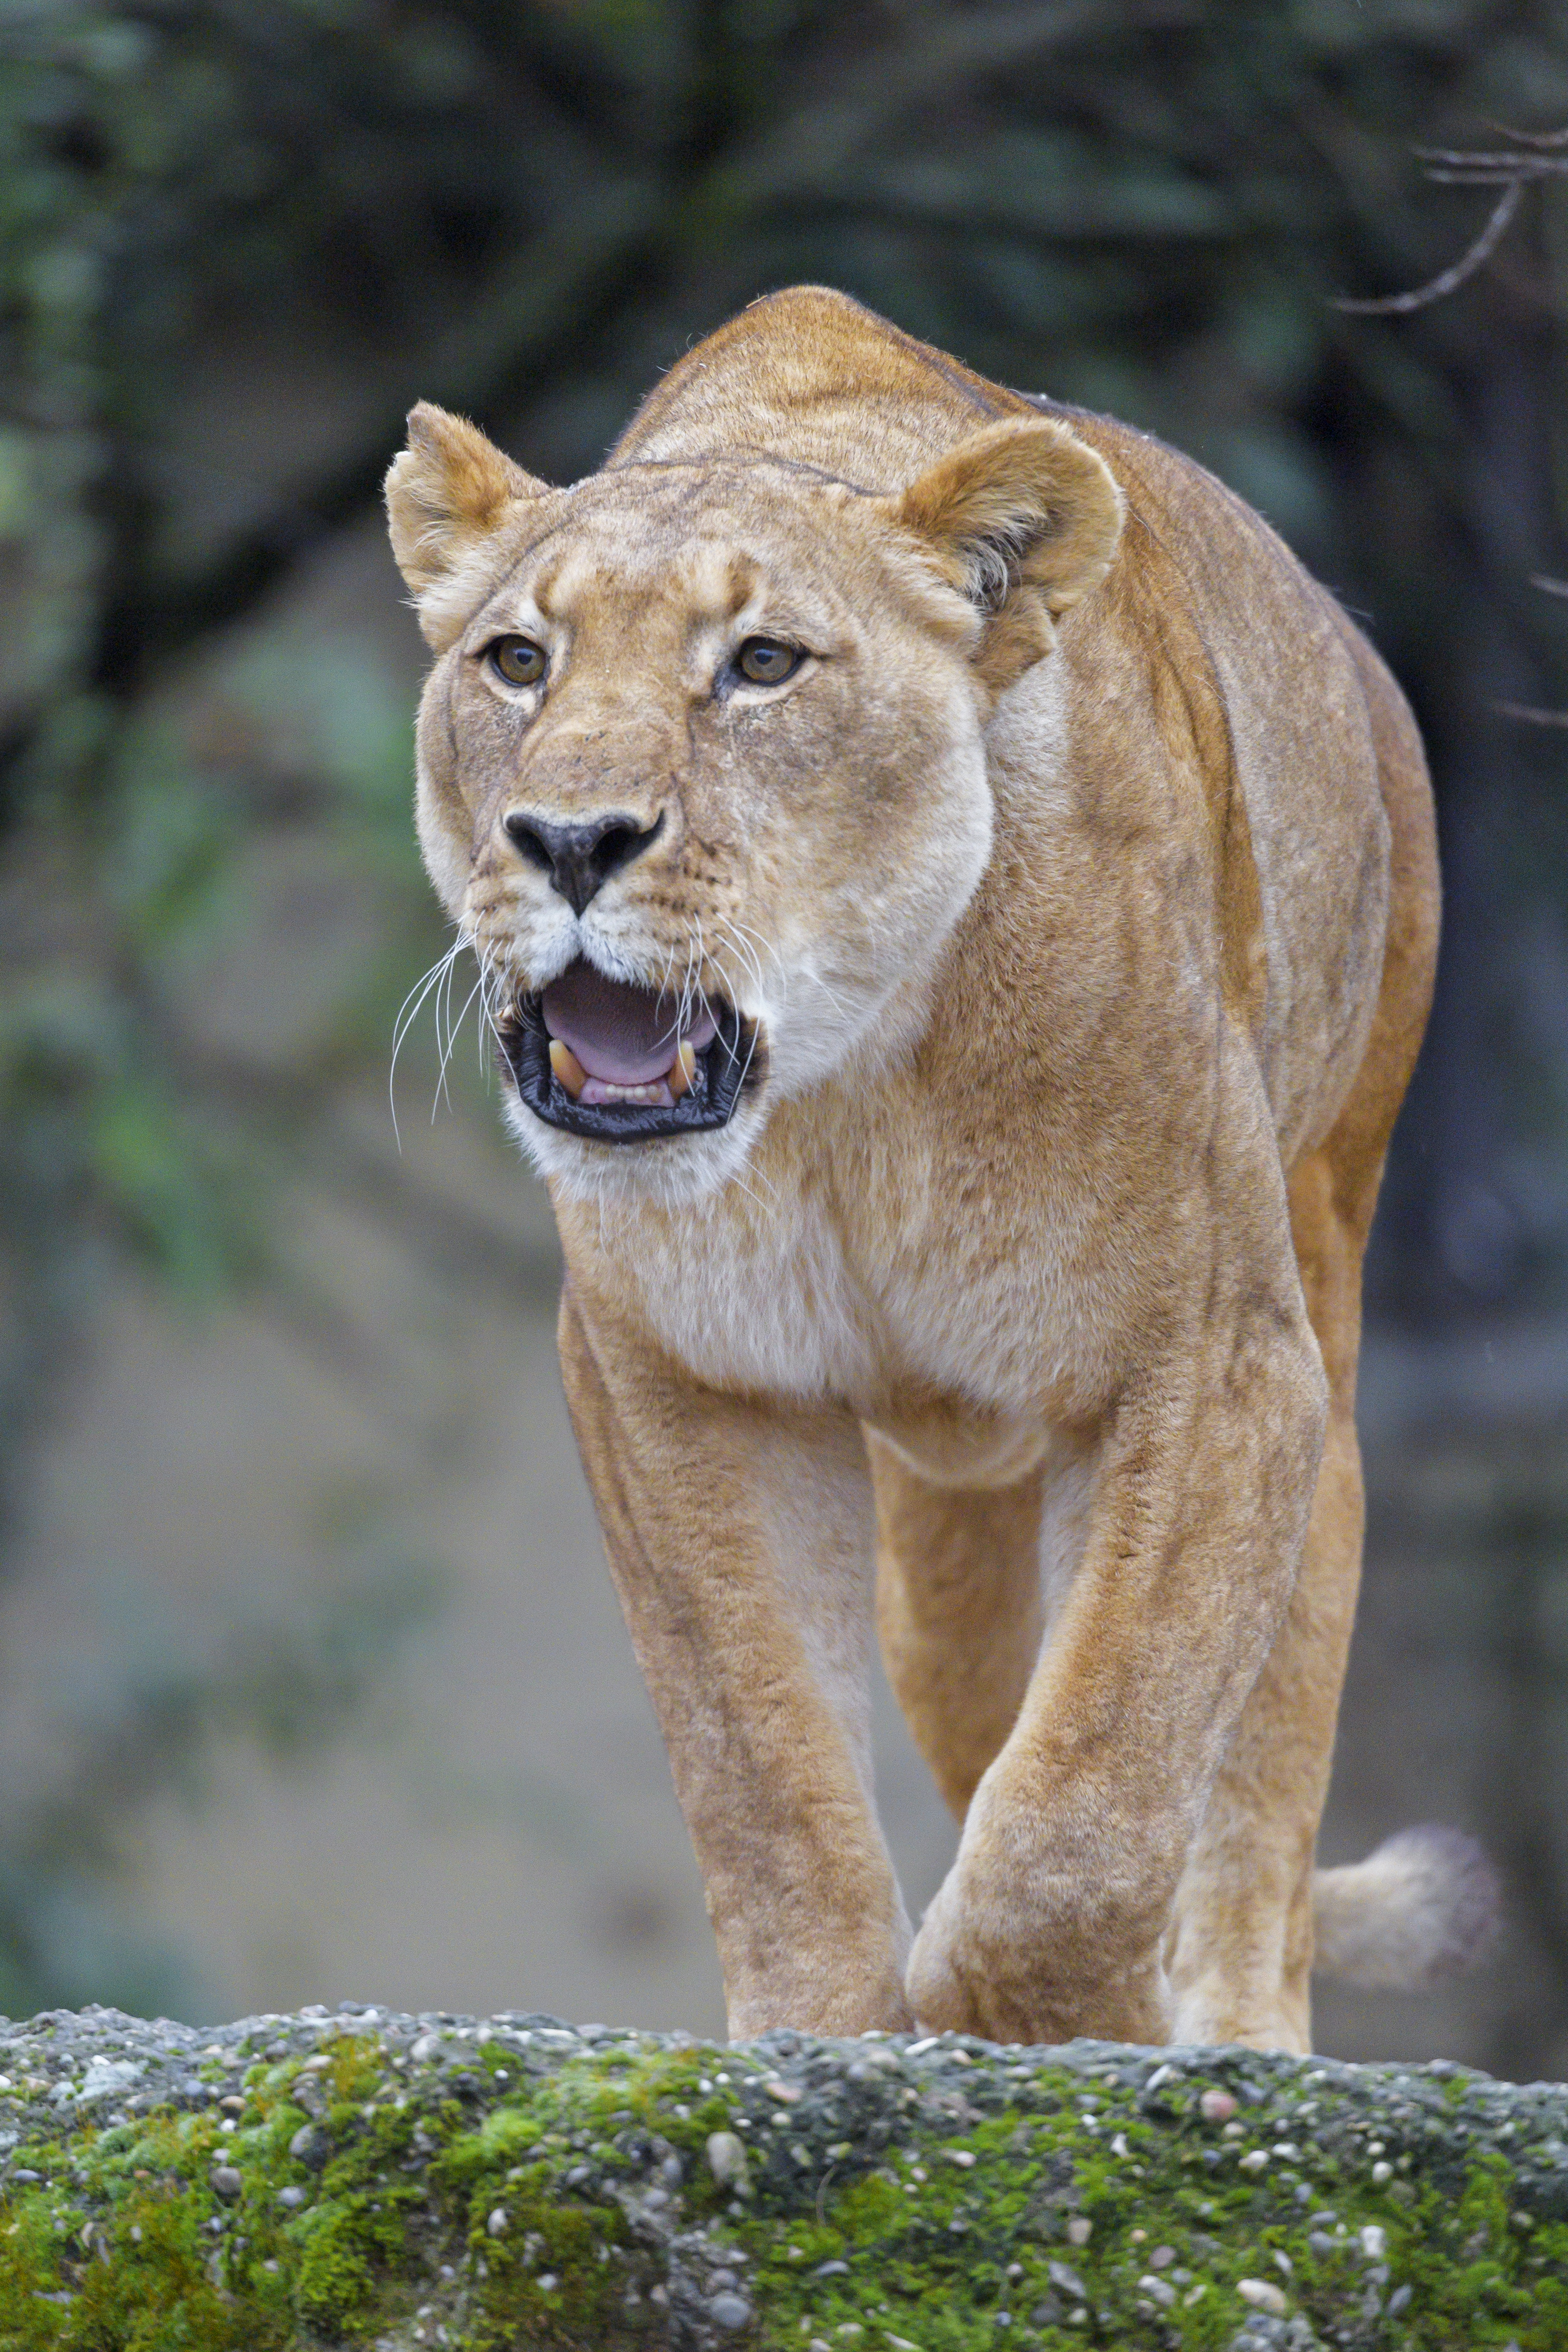 53945 download wallpaper Animals, Lion, Lioness, Predator, Roar, Big Cat screensavers and pictures for free